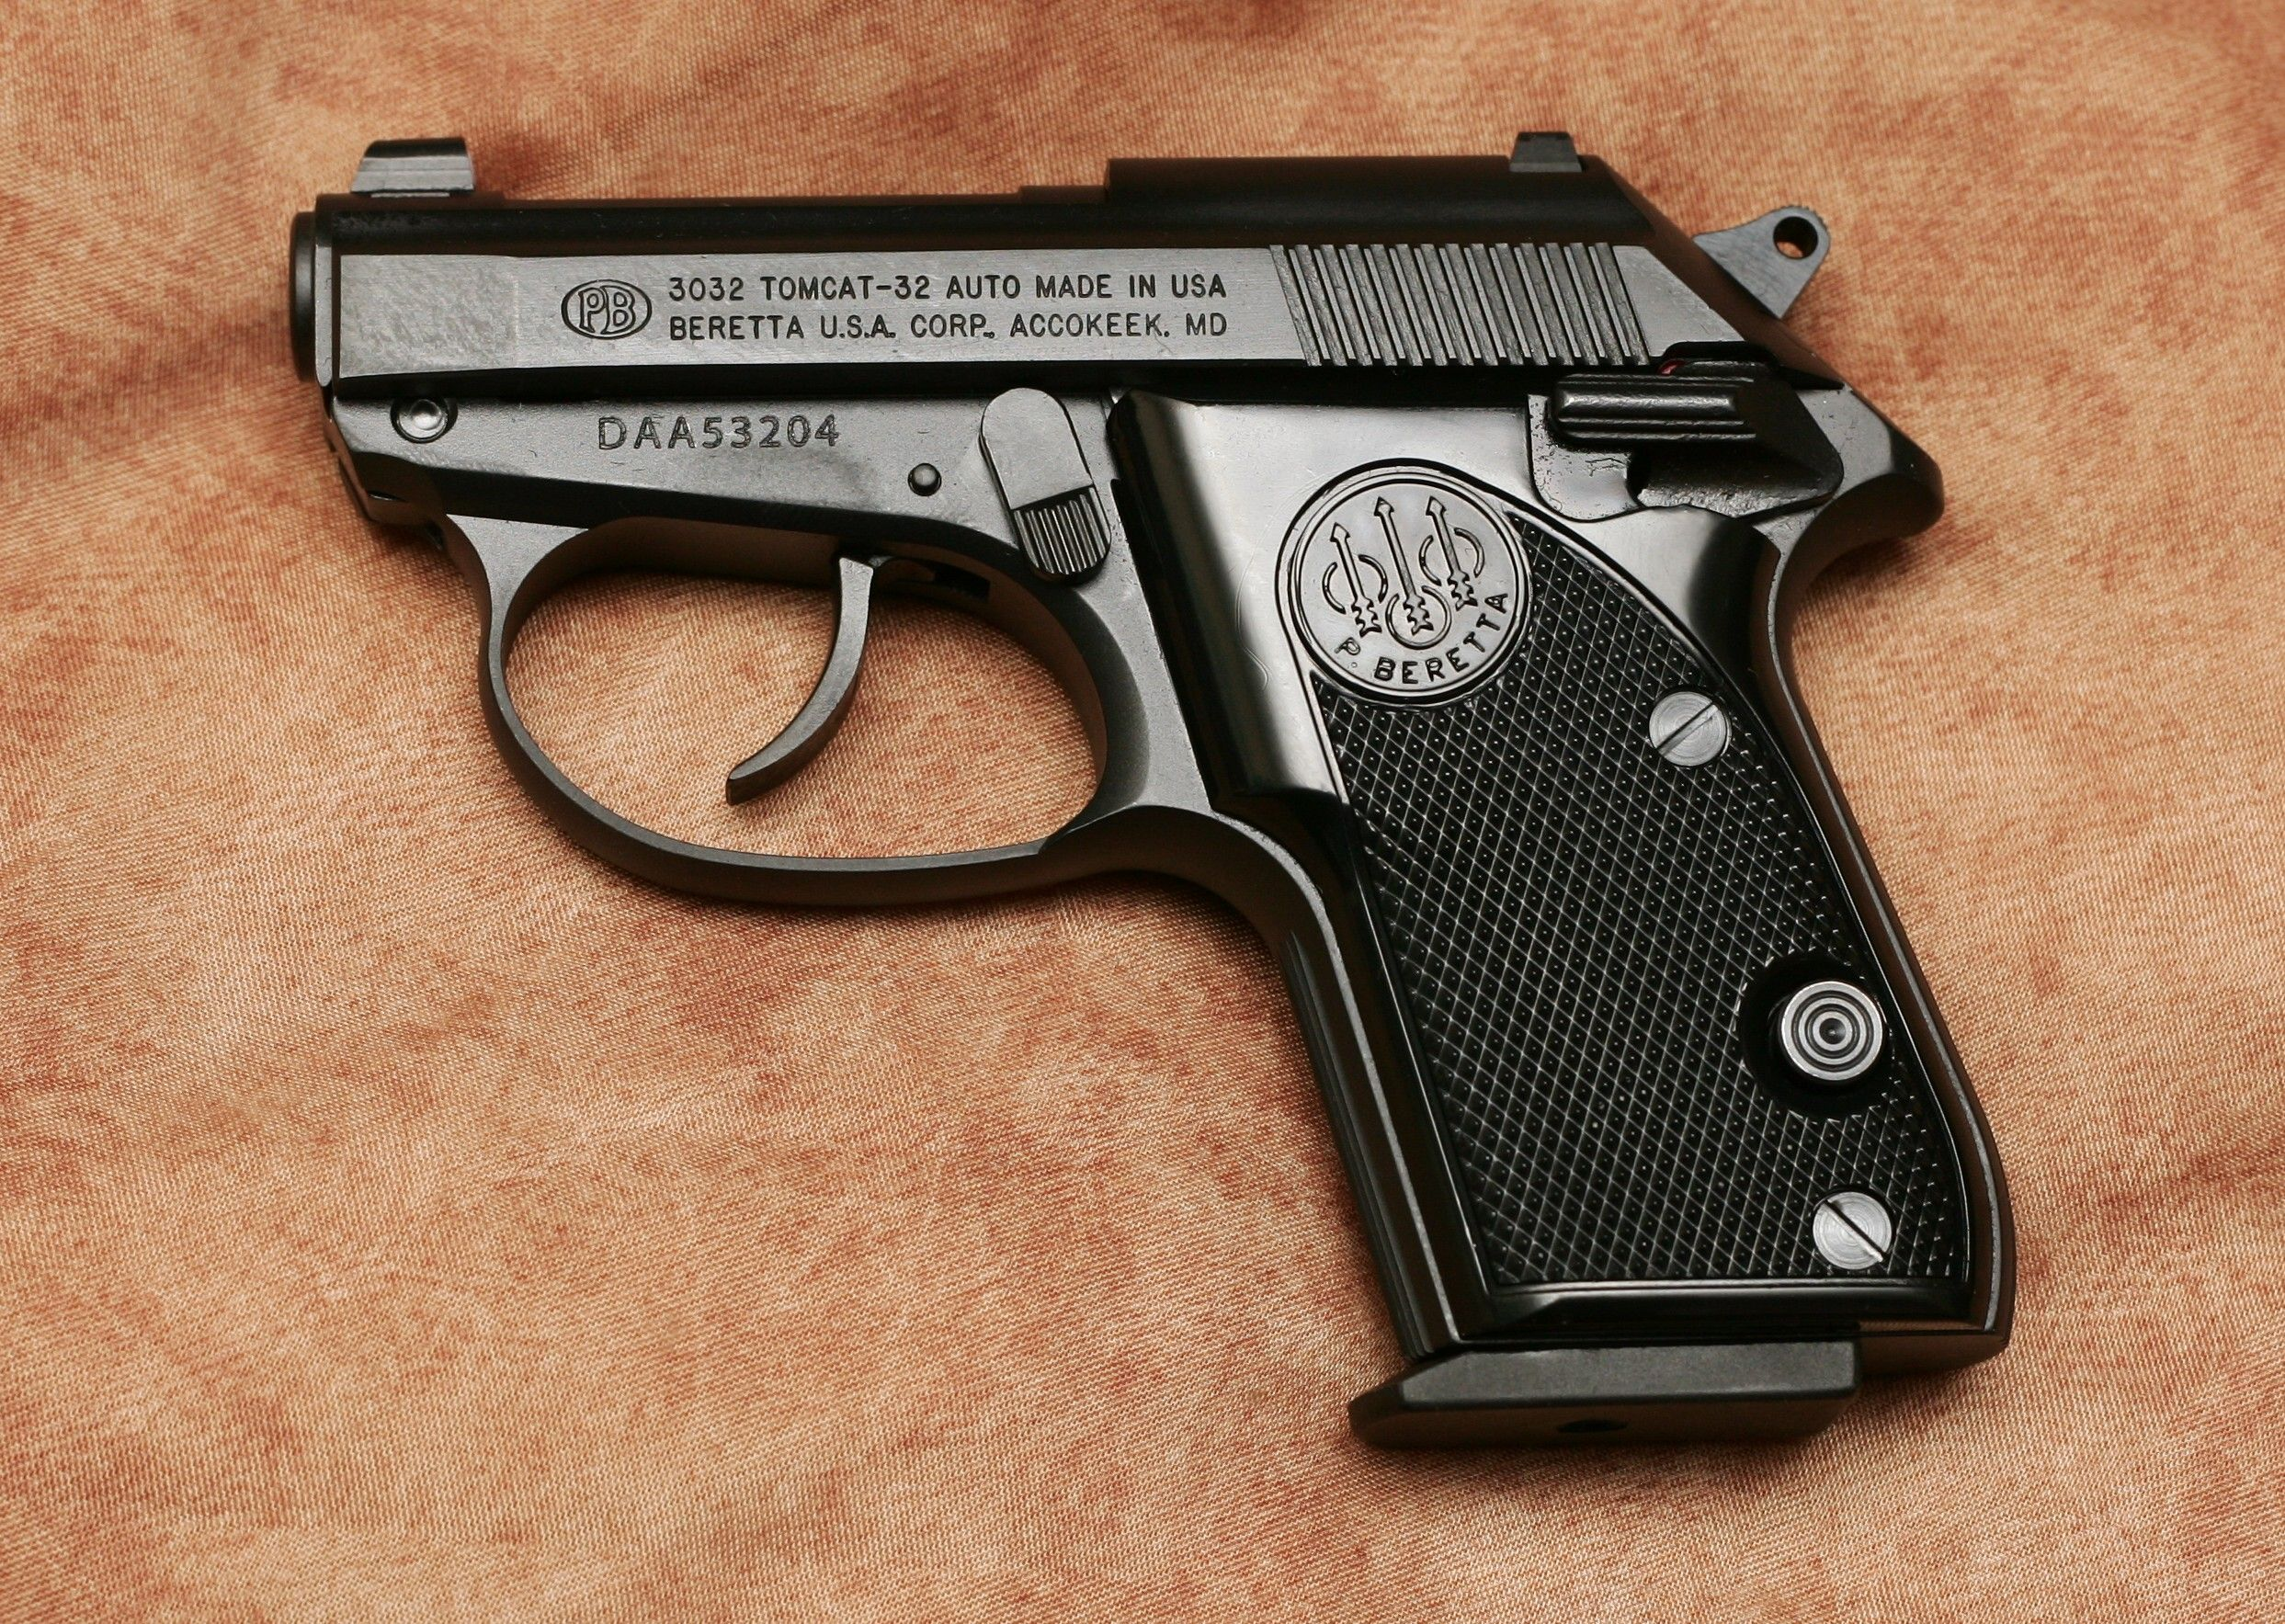 My  32 ACP Beretta Tomcat with XS sight  | My Firearm Related Photos